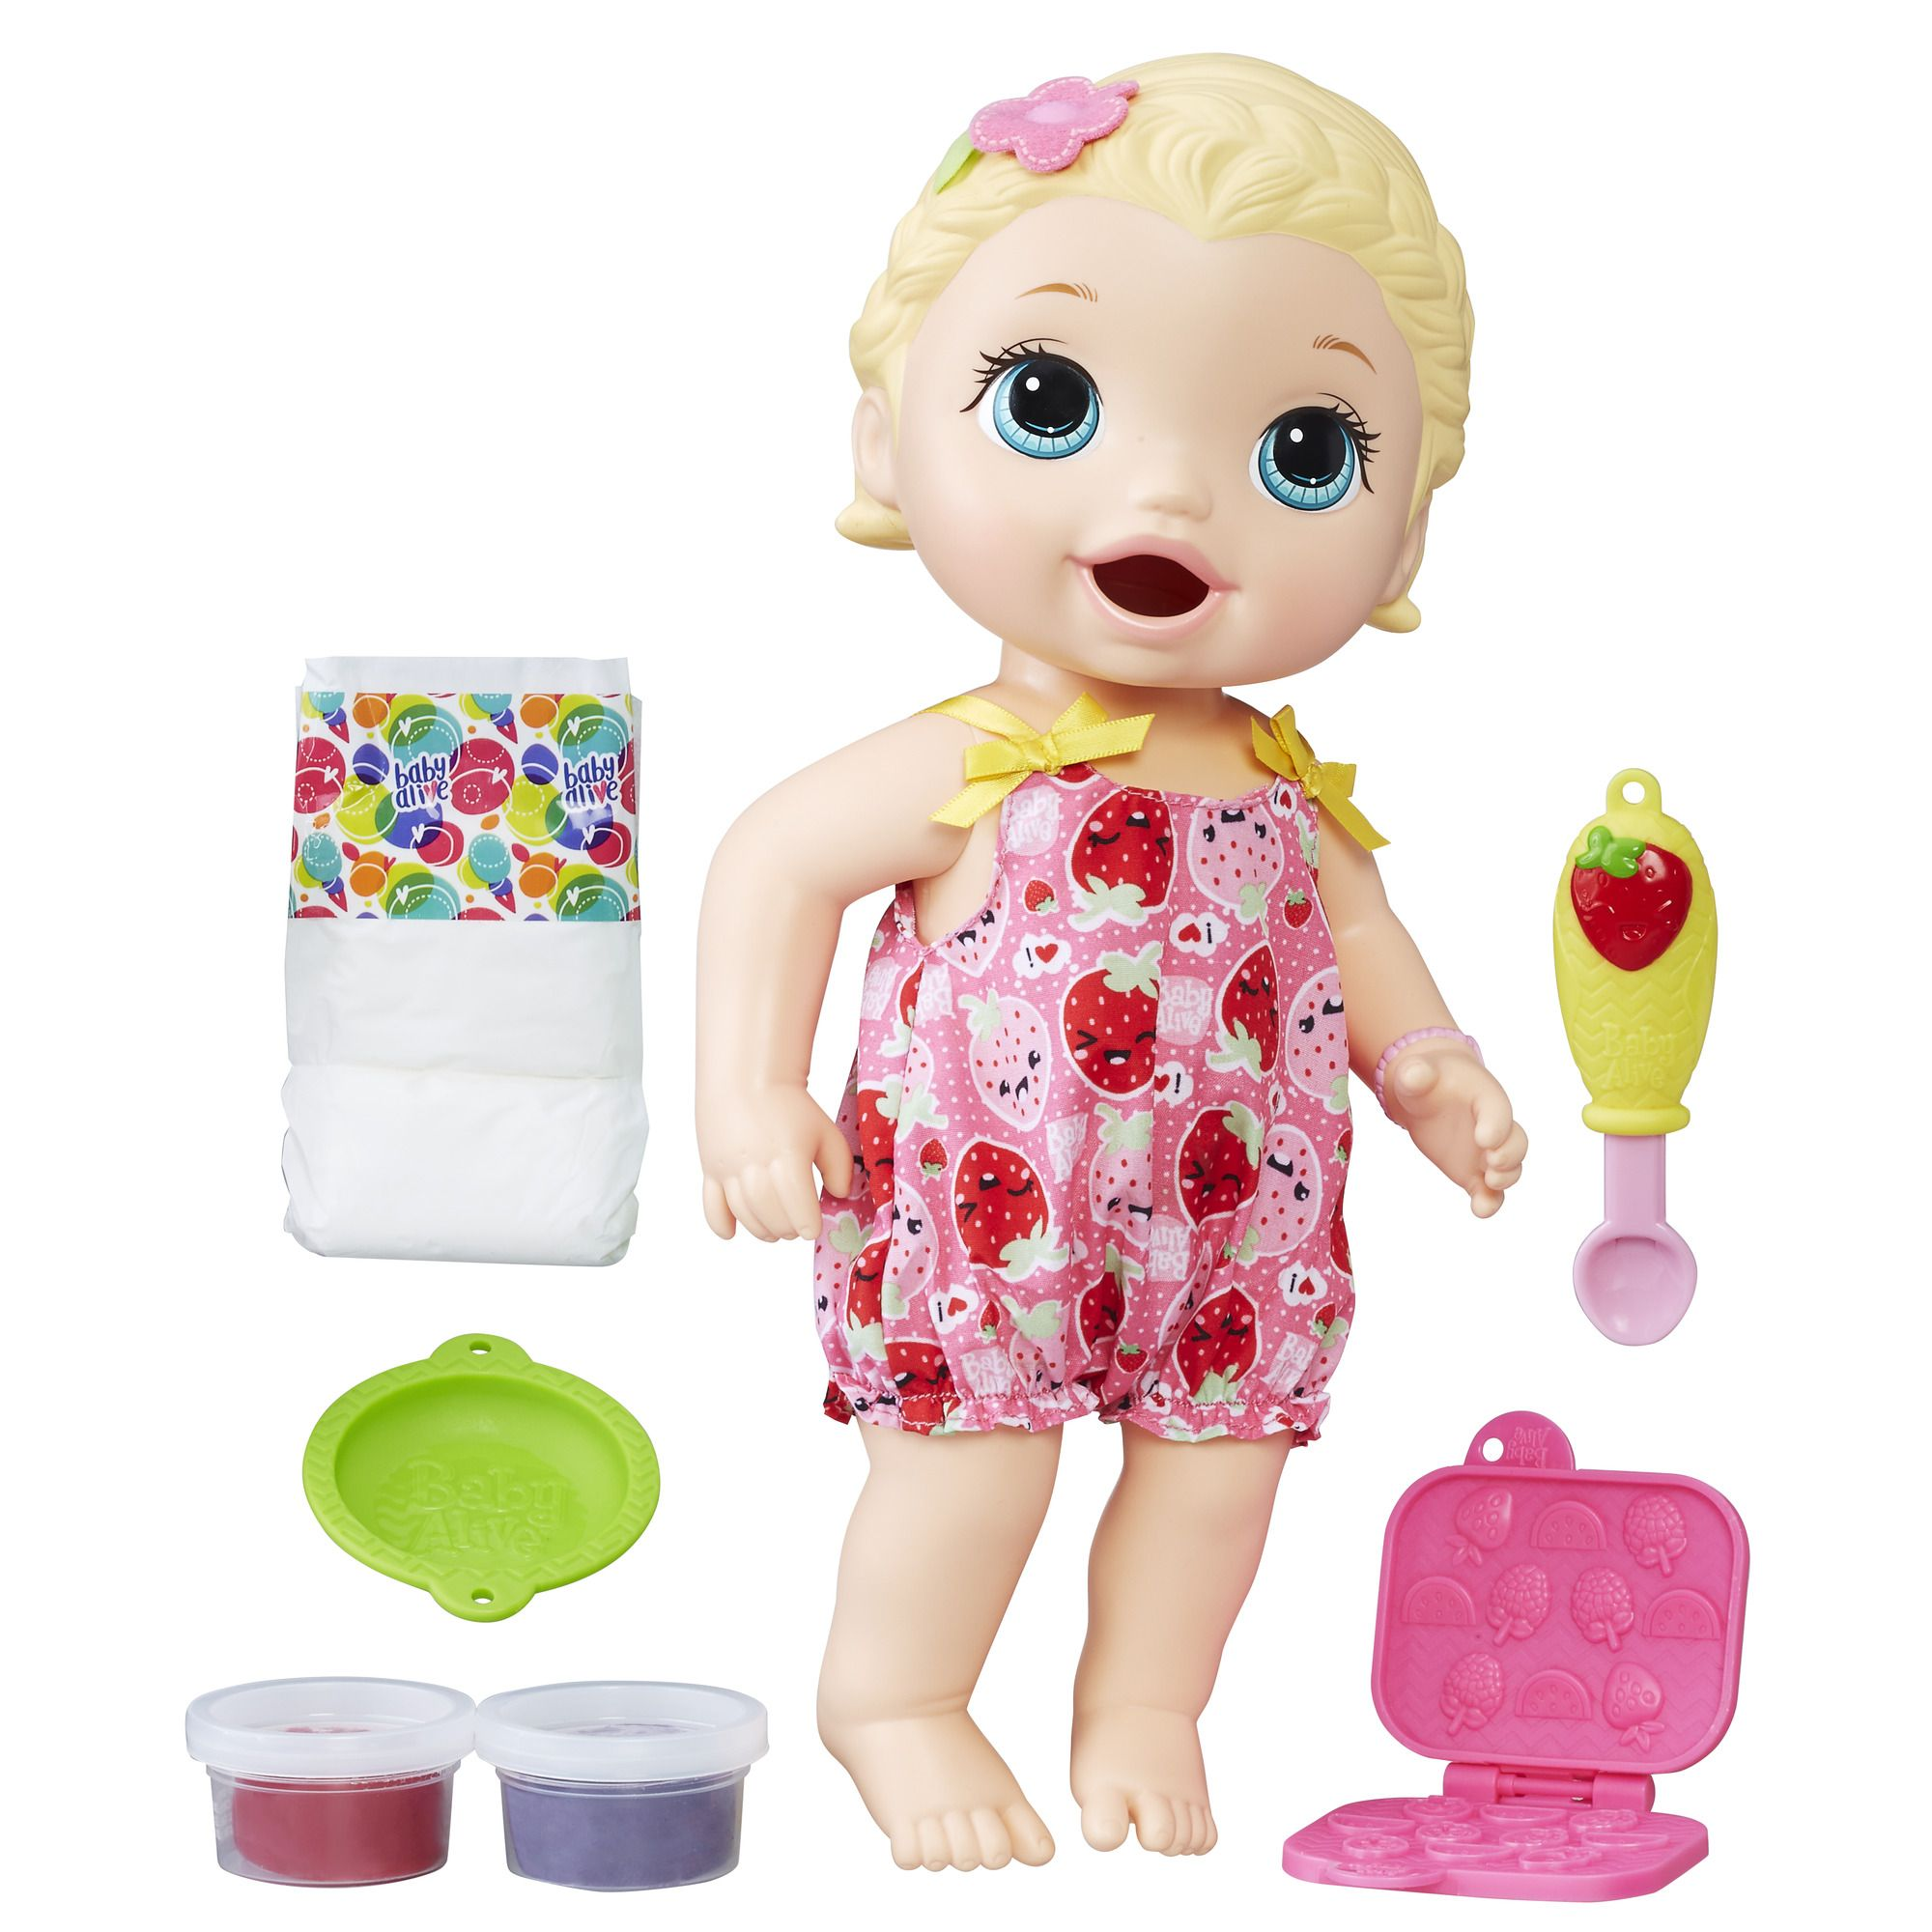 Pin By Laurenburgess On Kid Gifts Baby Alive Baby Alive Dolls